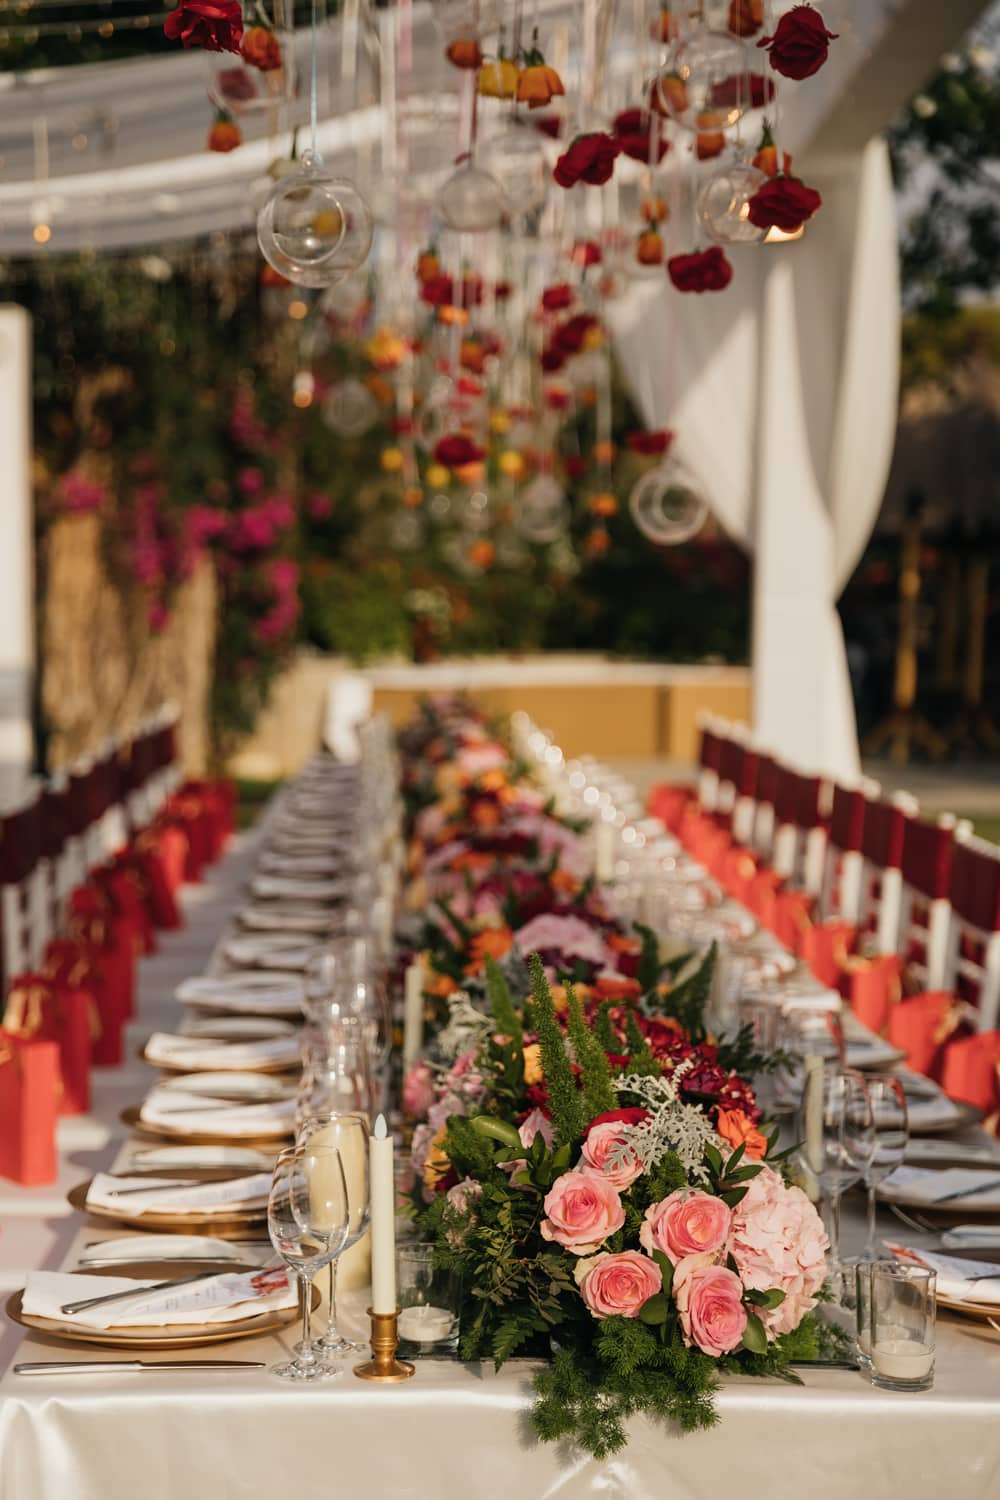 Tableware decorations for a reception at the Villa at Ayana Resort and Spa